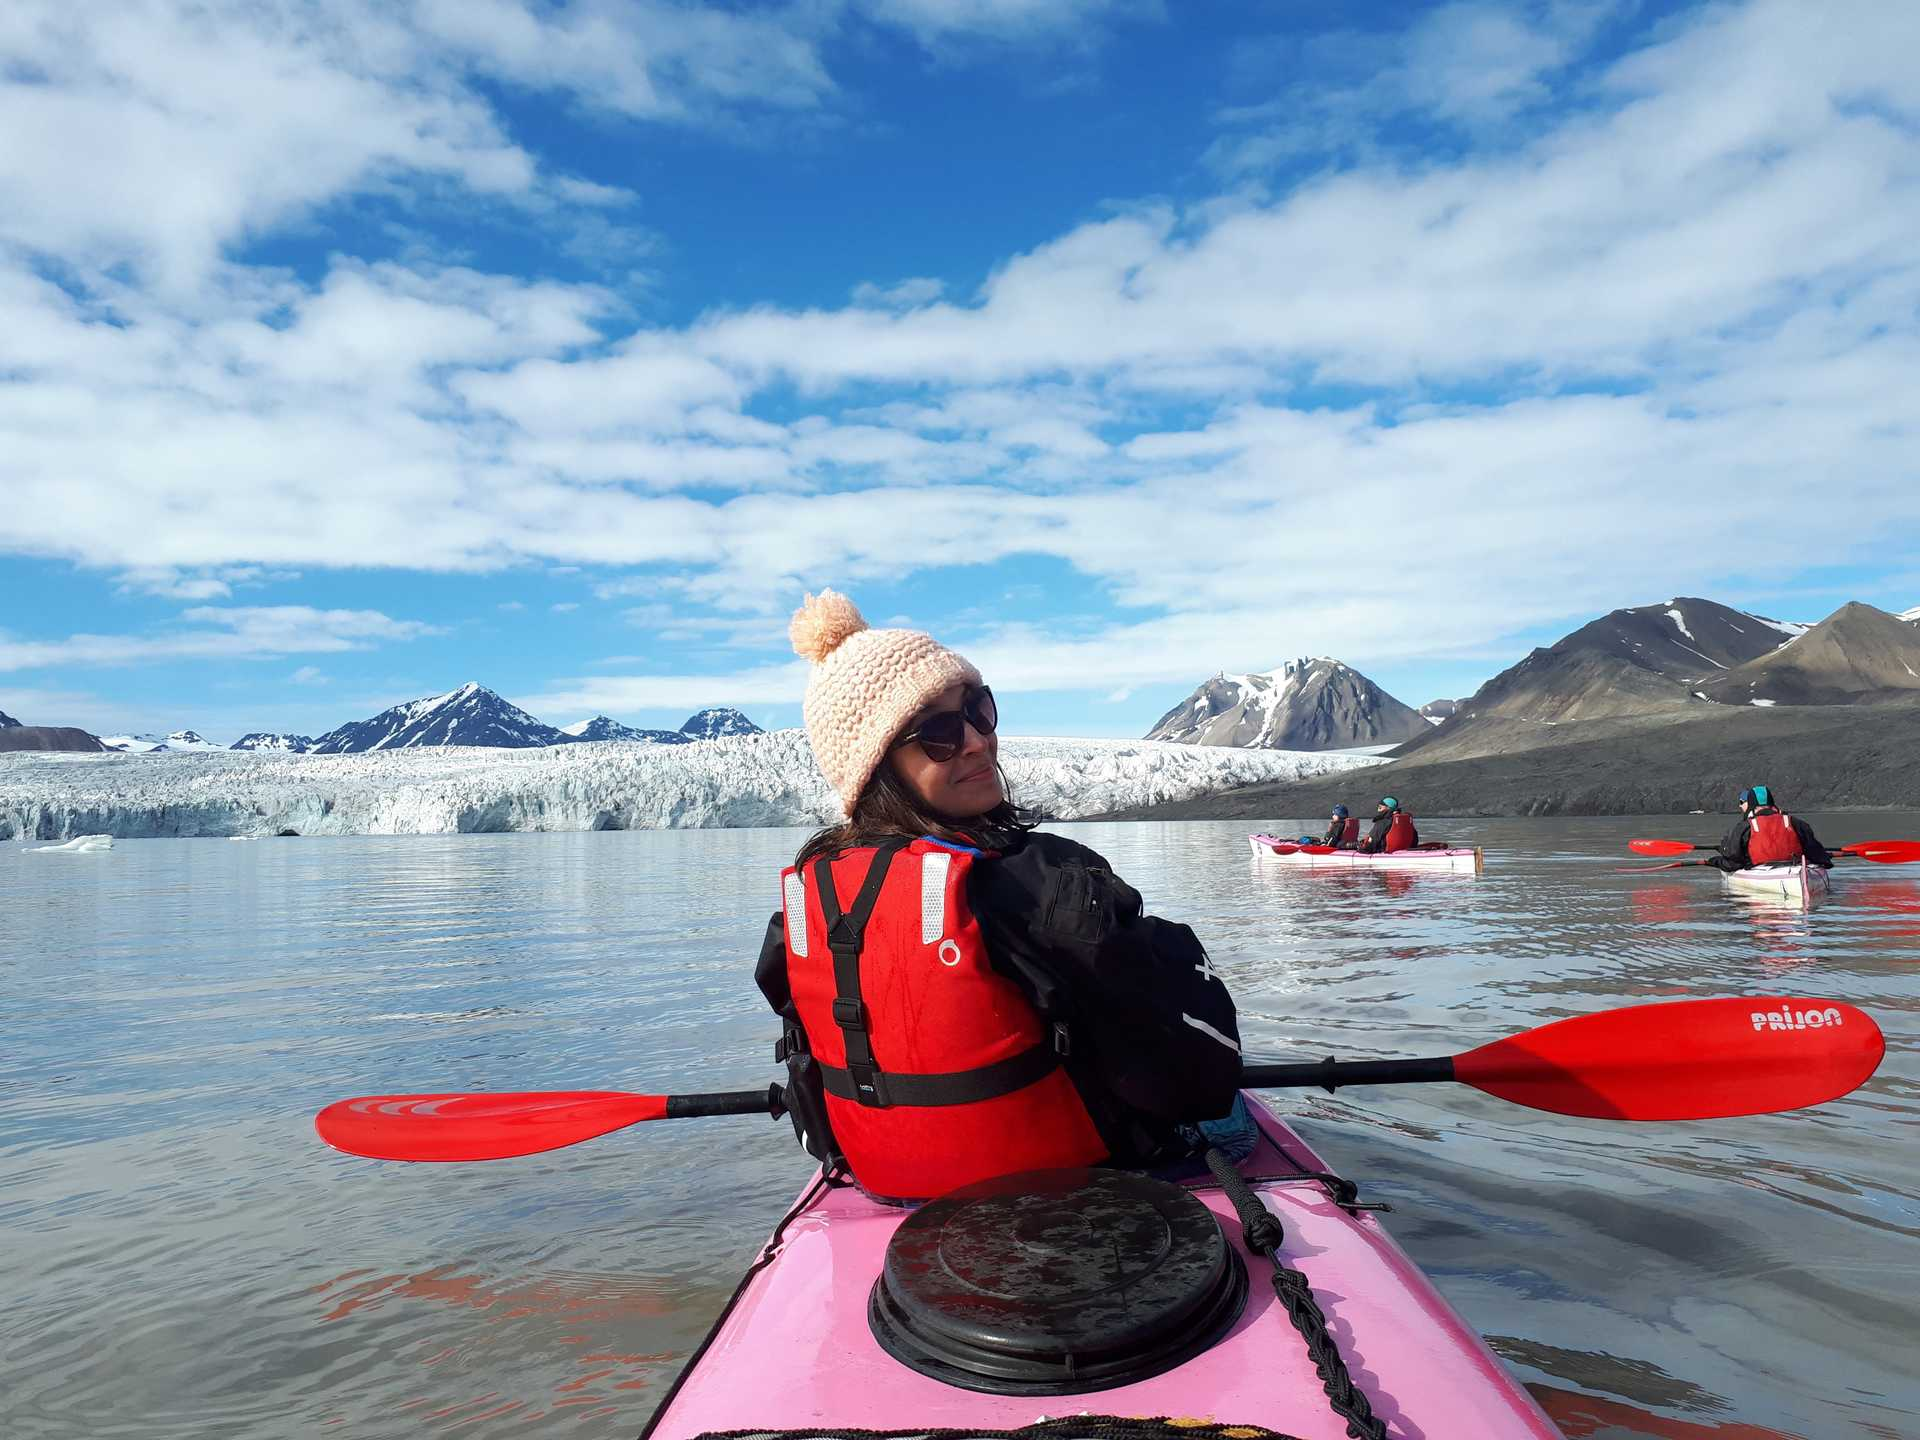 Kayak expedition in the Five Glaciers region, Svalbard